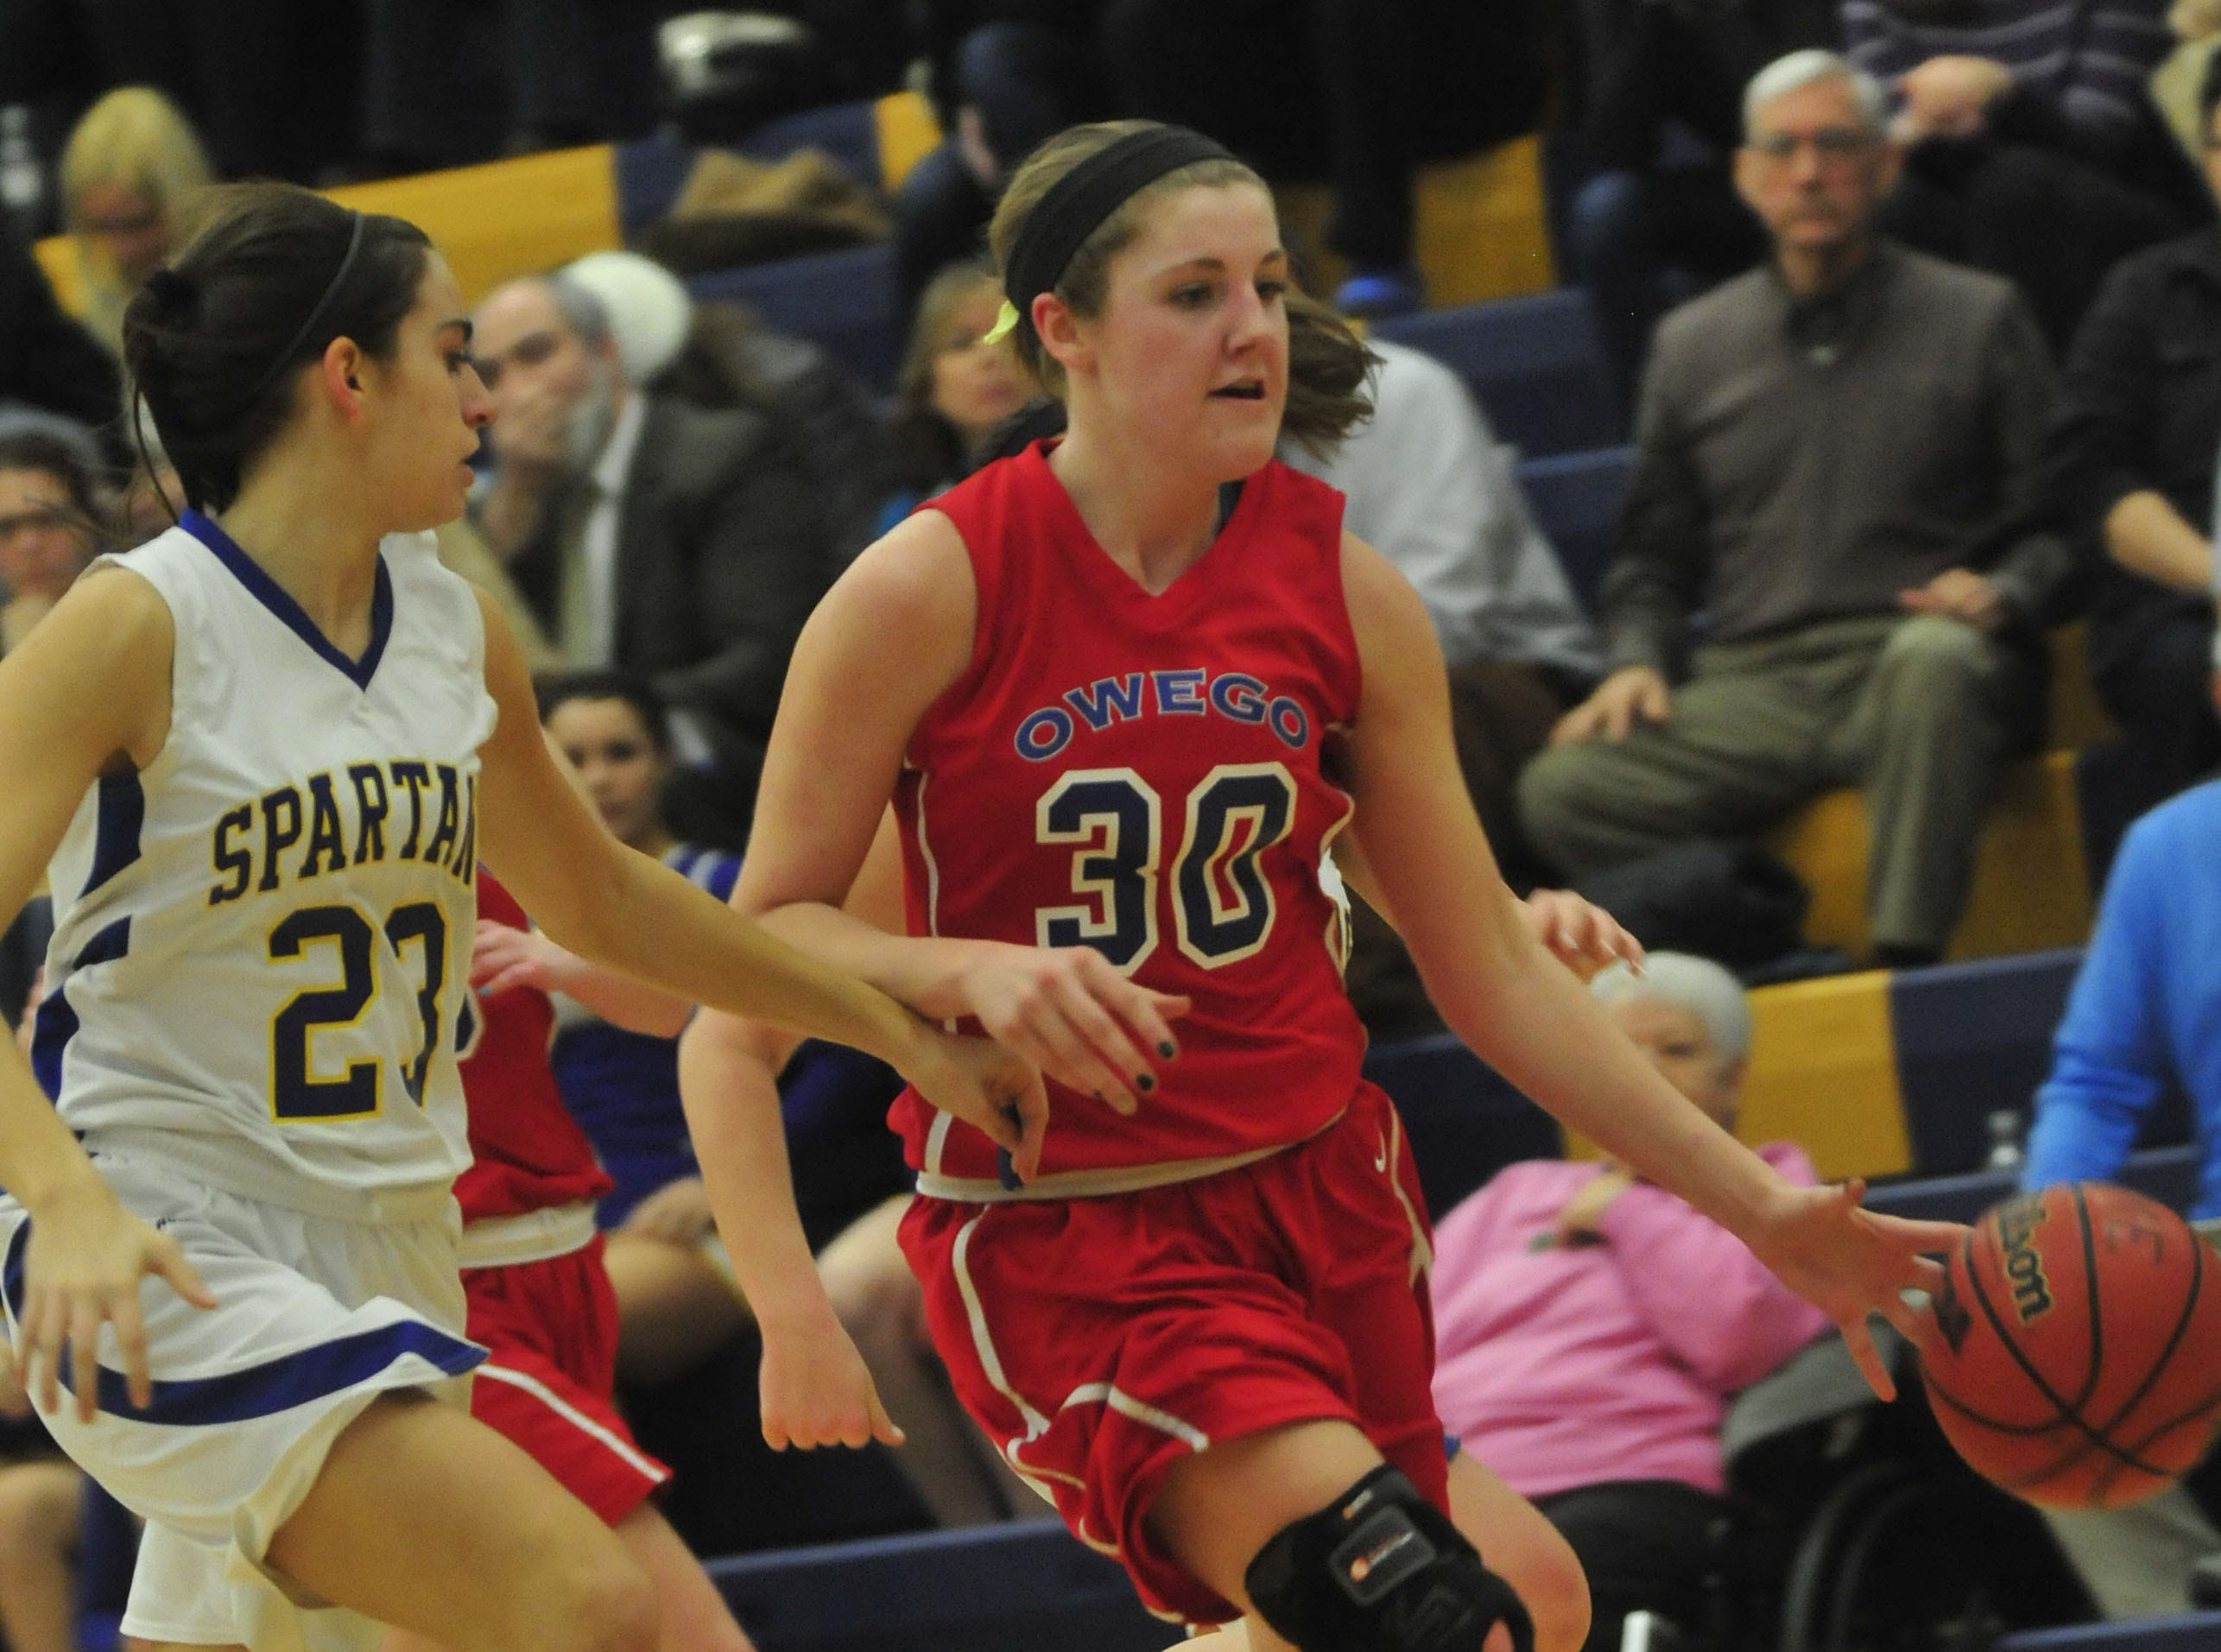 2014: Owego's Emily Merrill dribbles the ball past Maine-Endwell's Carla Spera in Wednesday's STAC semifinal. Merrill scored 16 points in Owego's 62-60 victory.